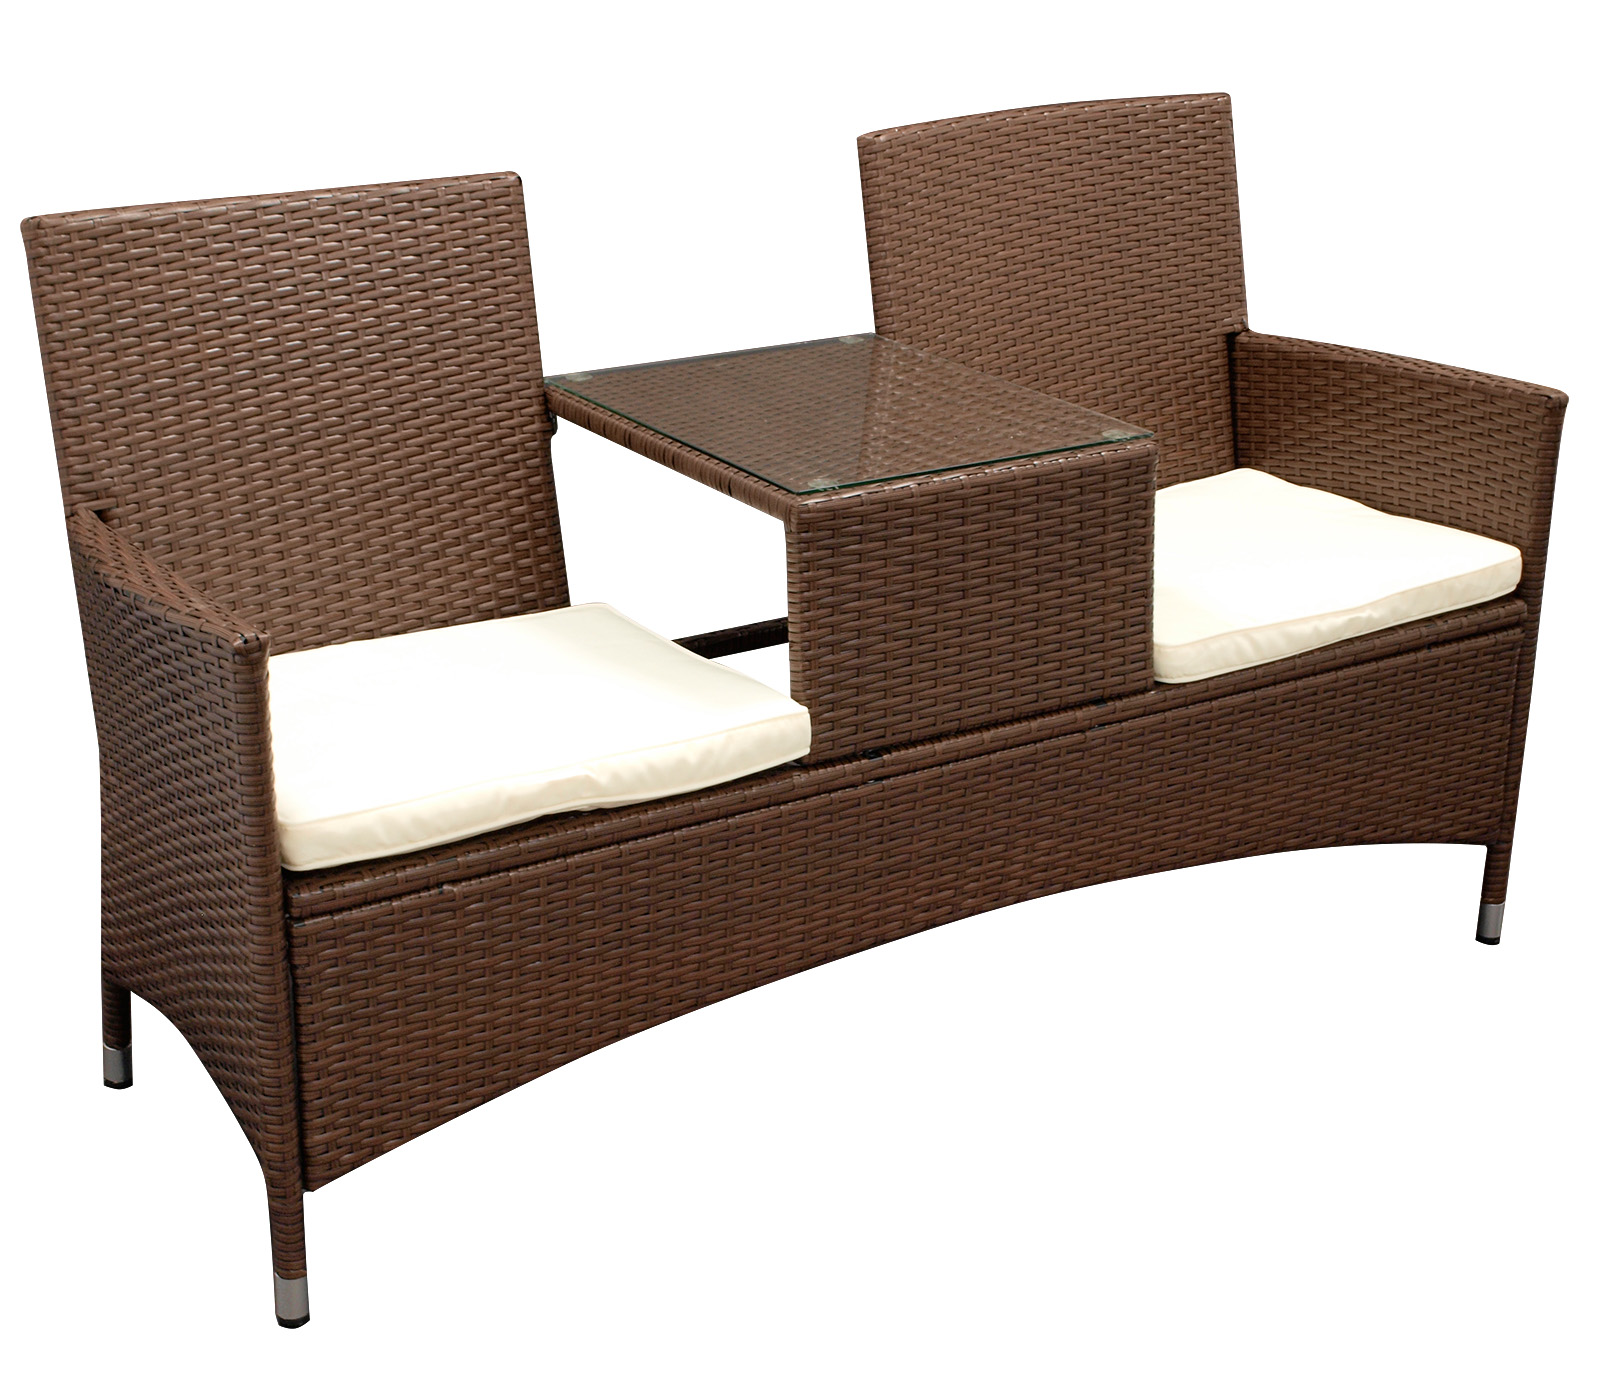 gartenbank mit tisch rattan 173934 eine. Black Bedroom Furniture Sets. Home Design Ideas